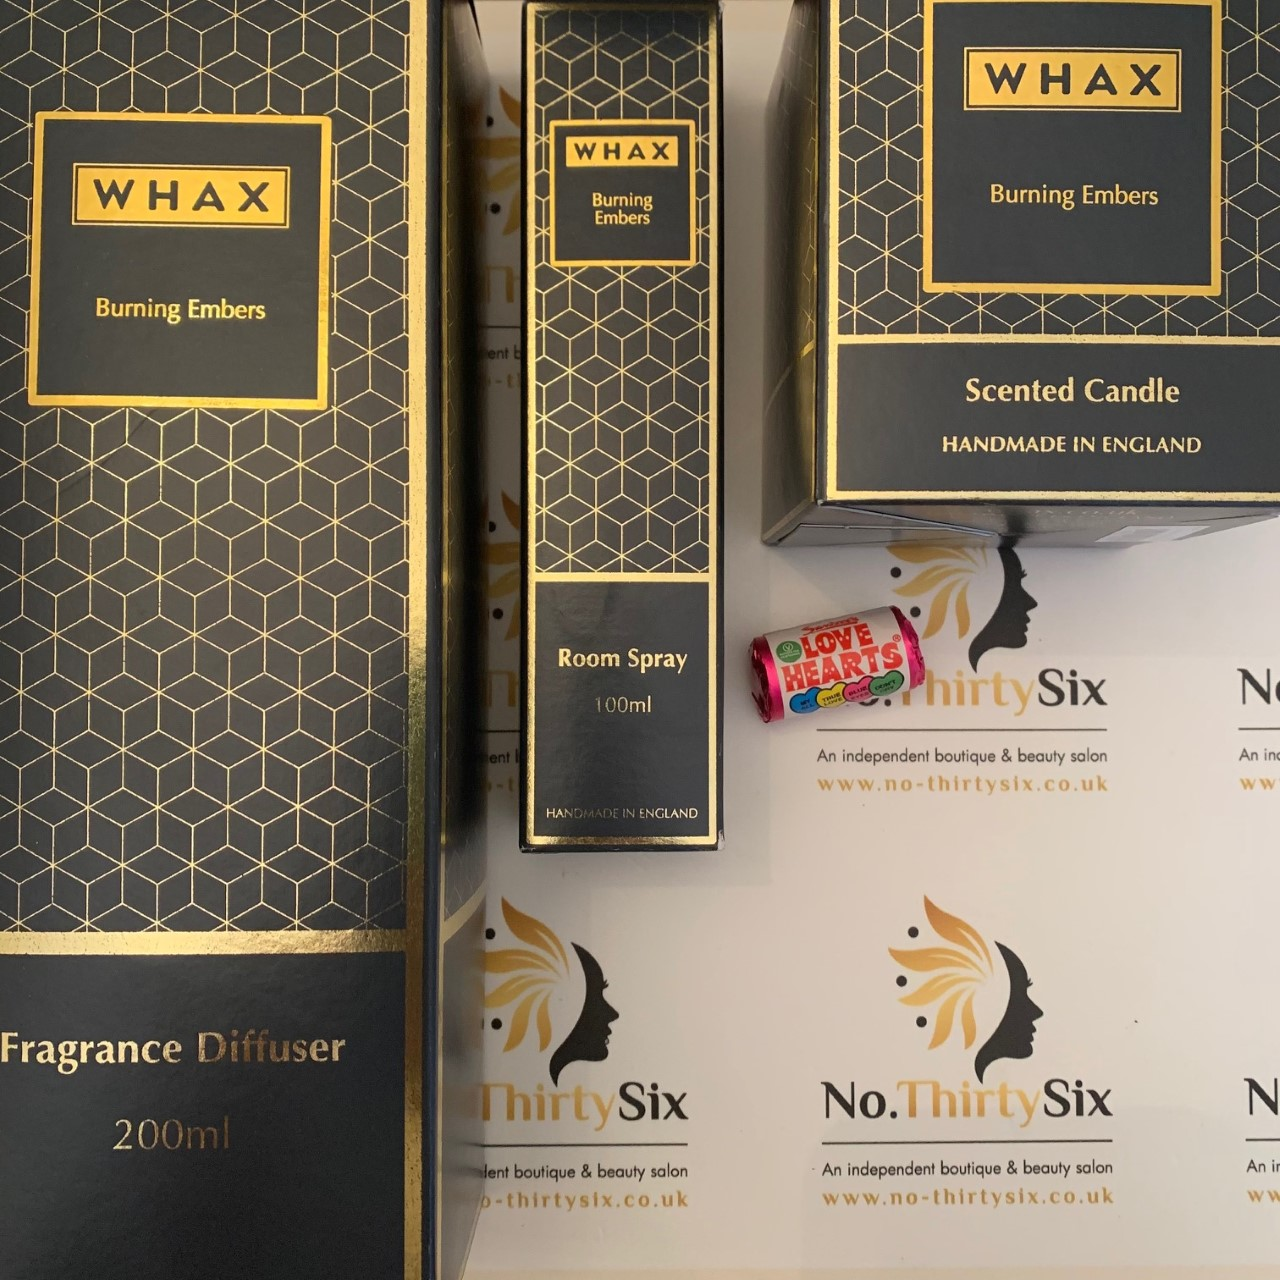 Whax Home Sets - Hand Picked Natural Scents